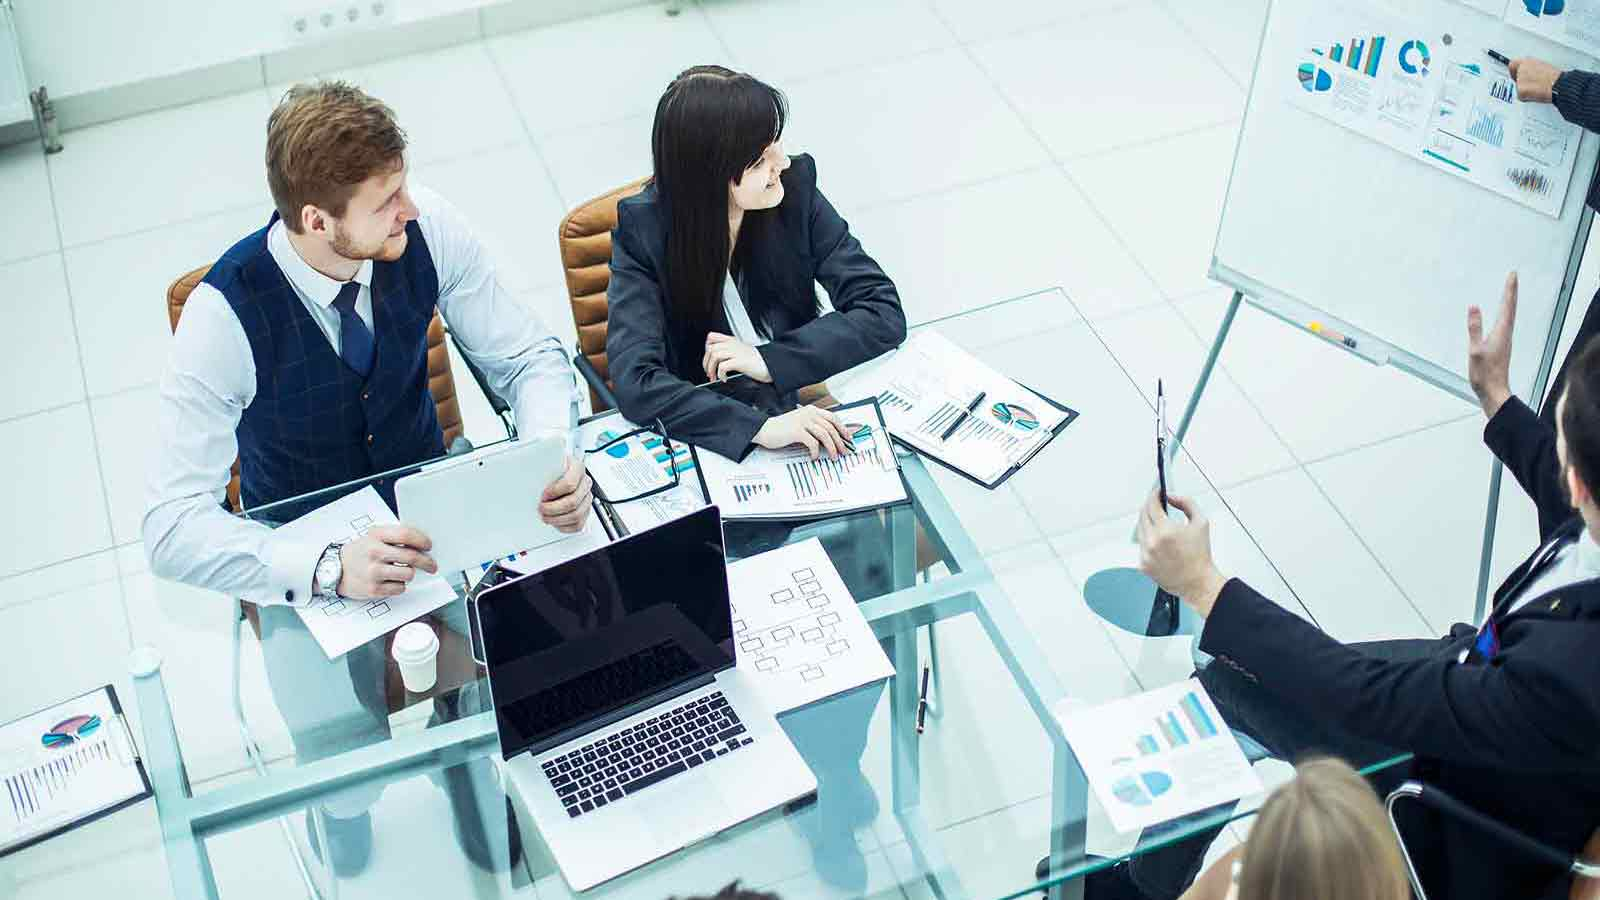 man and women in suits sitting at table looking at a person presenting planning charts